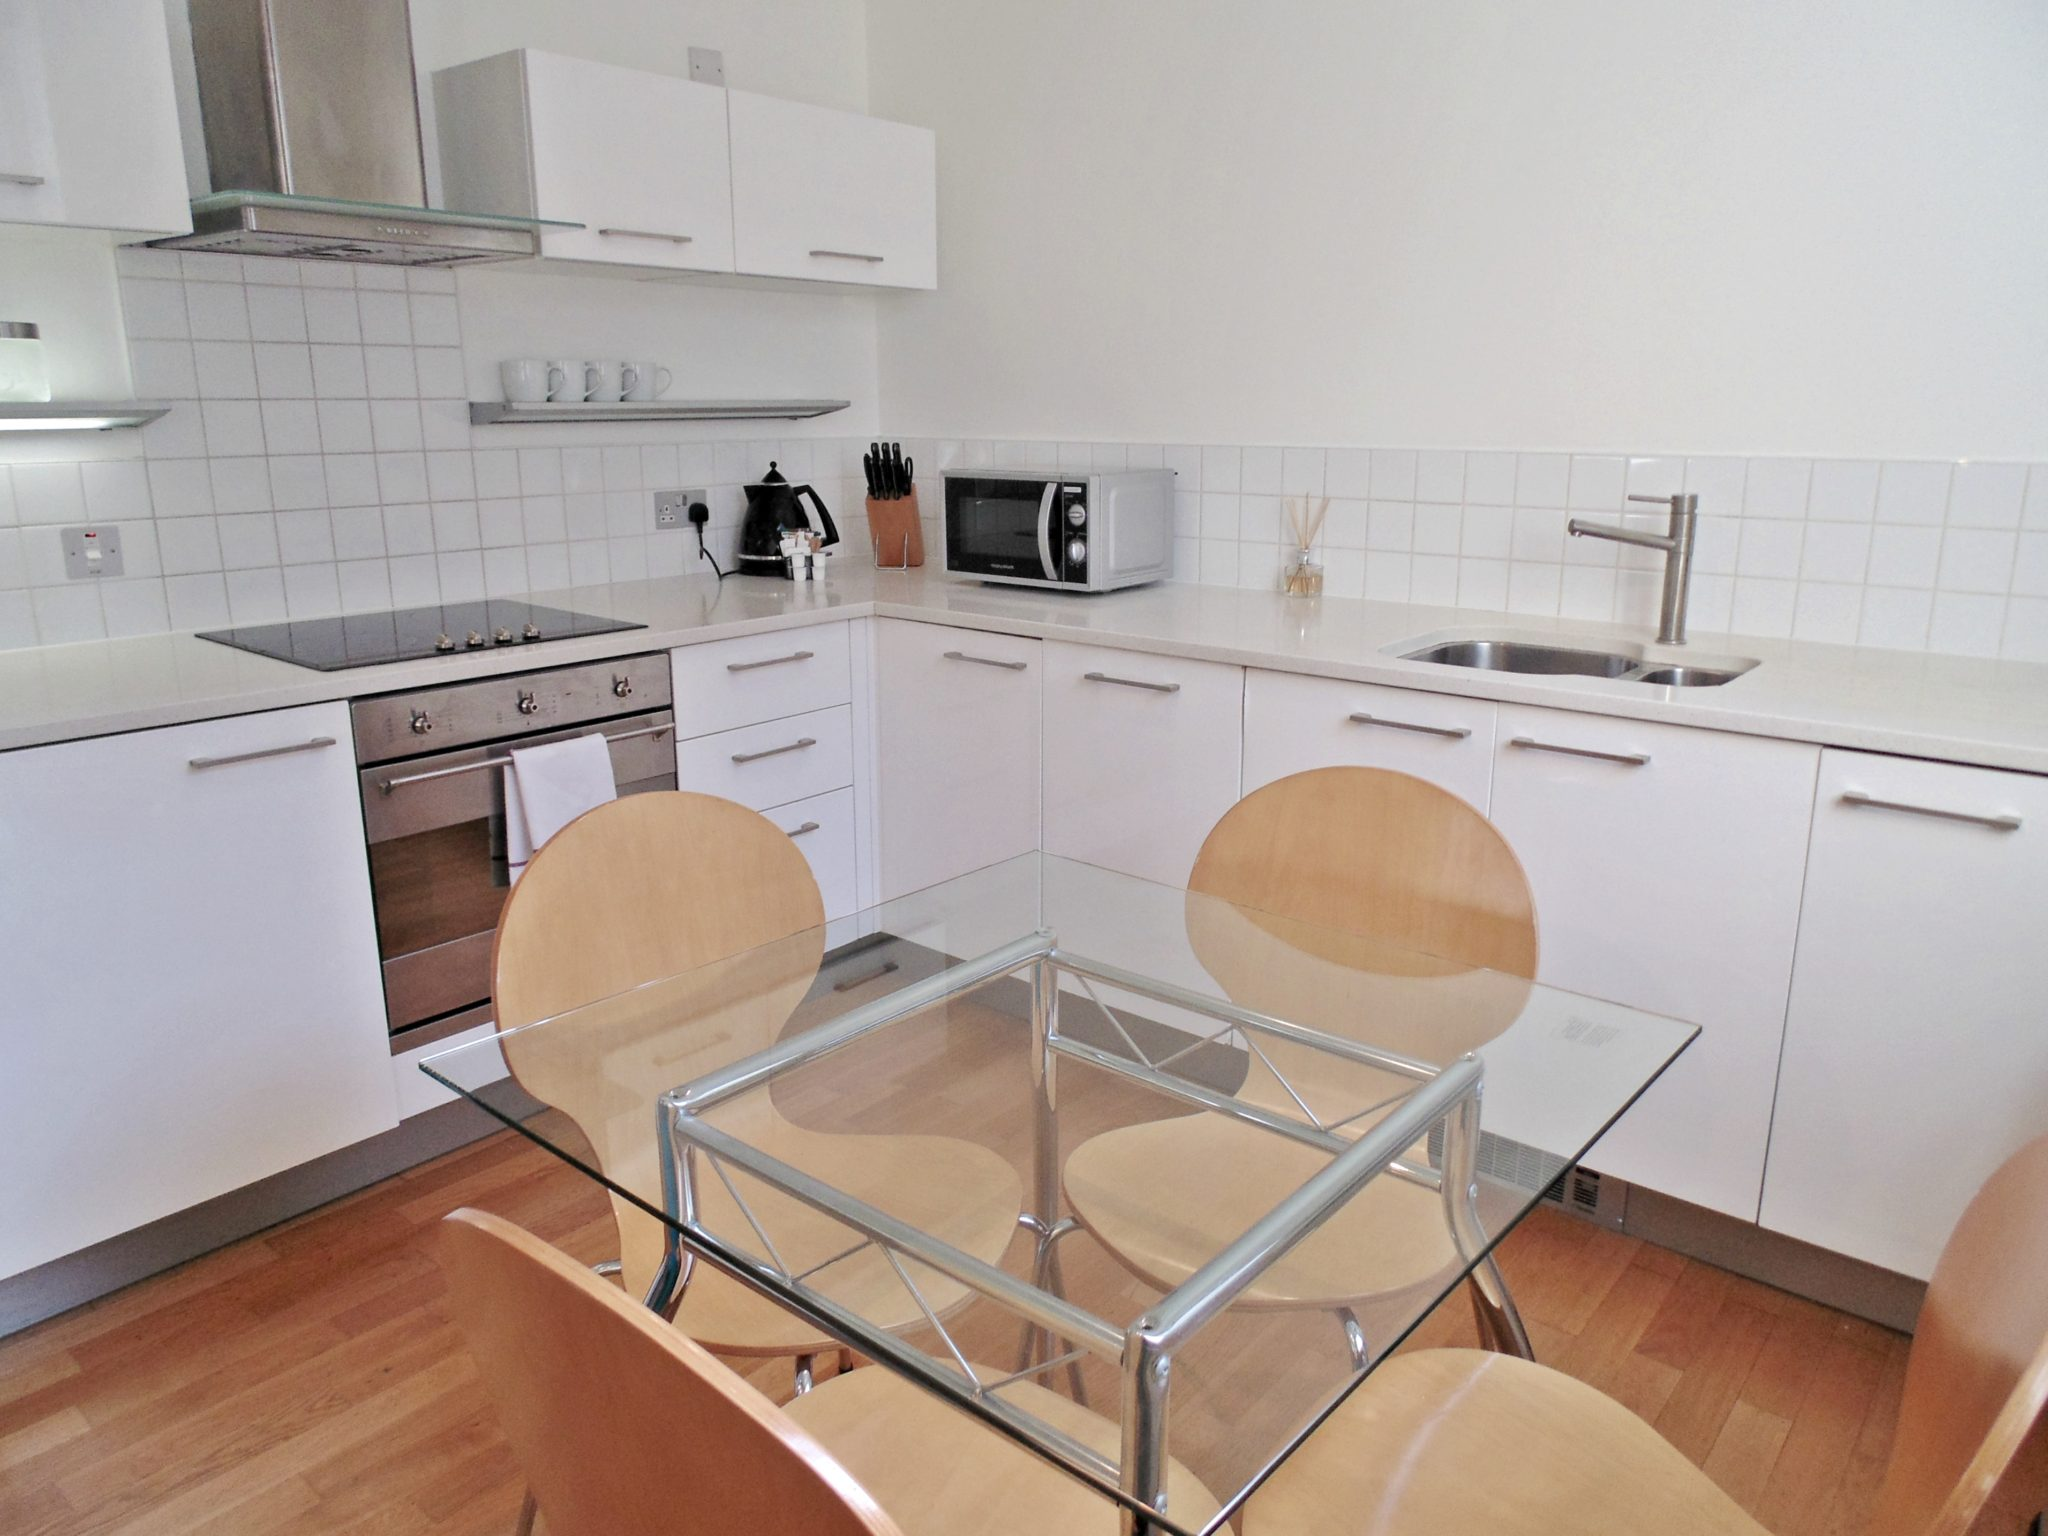 Amazing-London-Serviced-Accommodation-King's-Cross!-Free-Wifi---No-Booking-Fees---Quality-London-Short-Lets---Professional-Service!-+44-(0)-208-691-3920